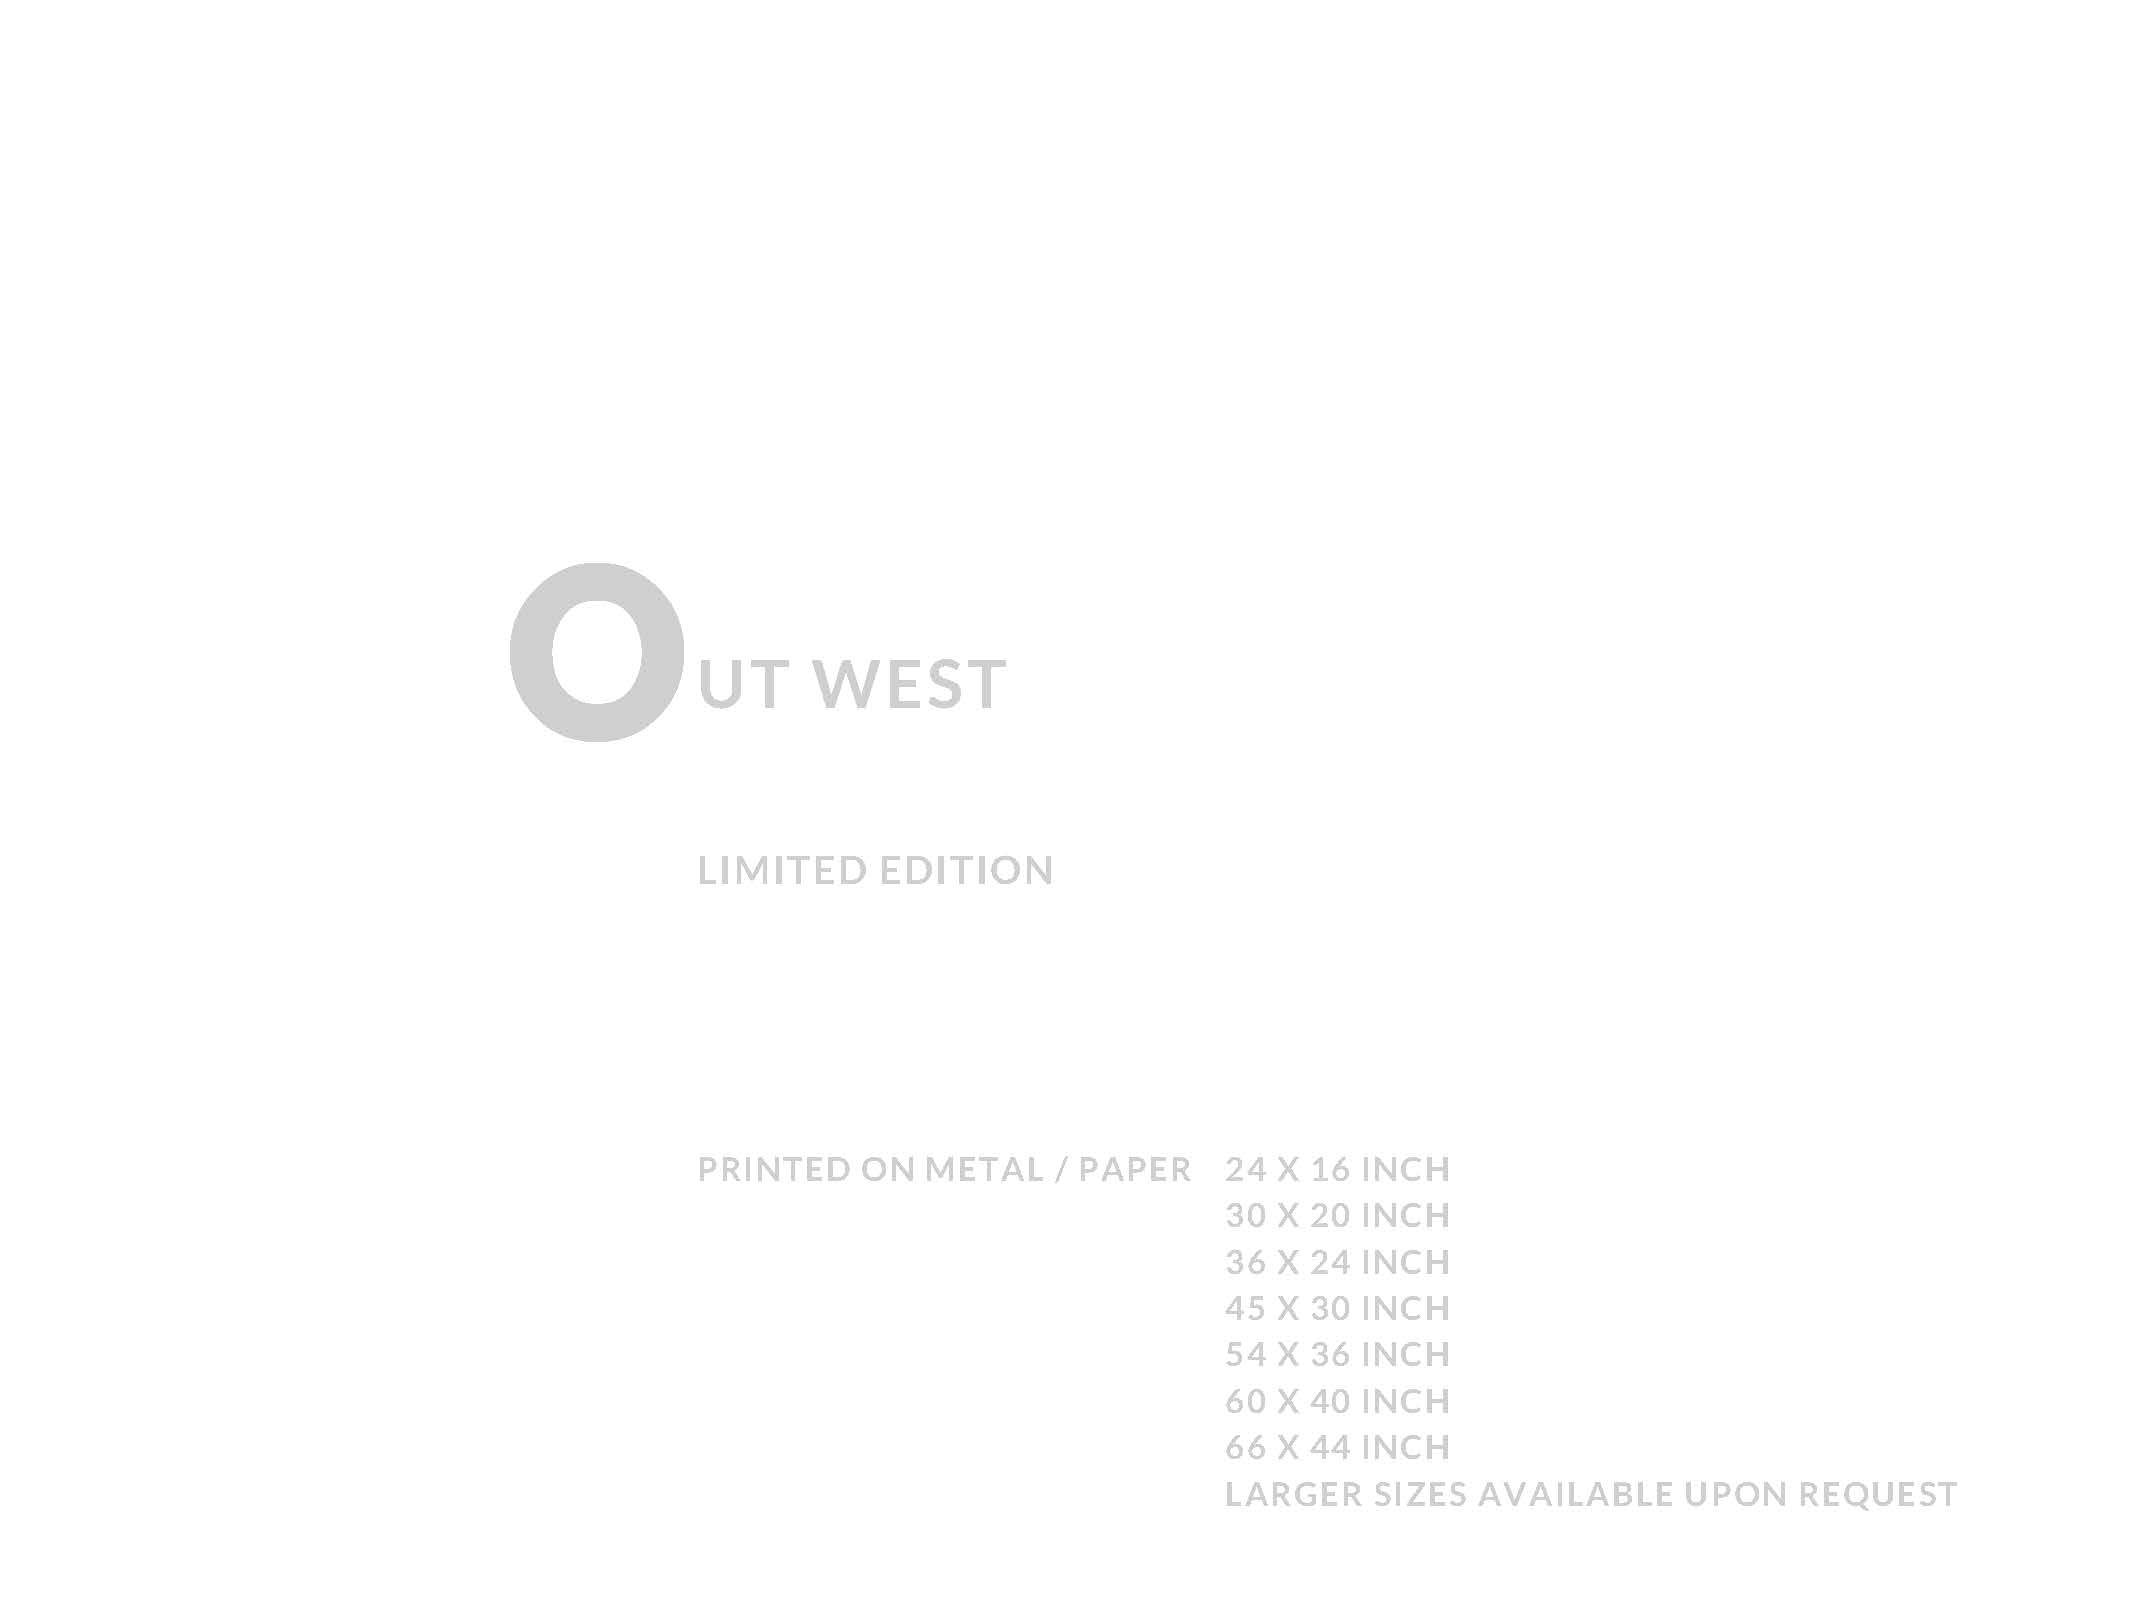 out west-reduce_Page_02.jpg